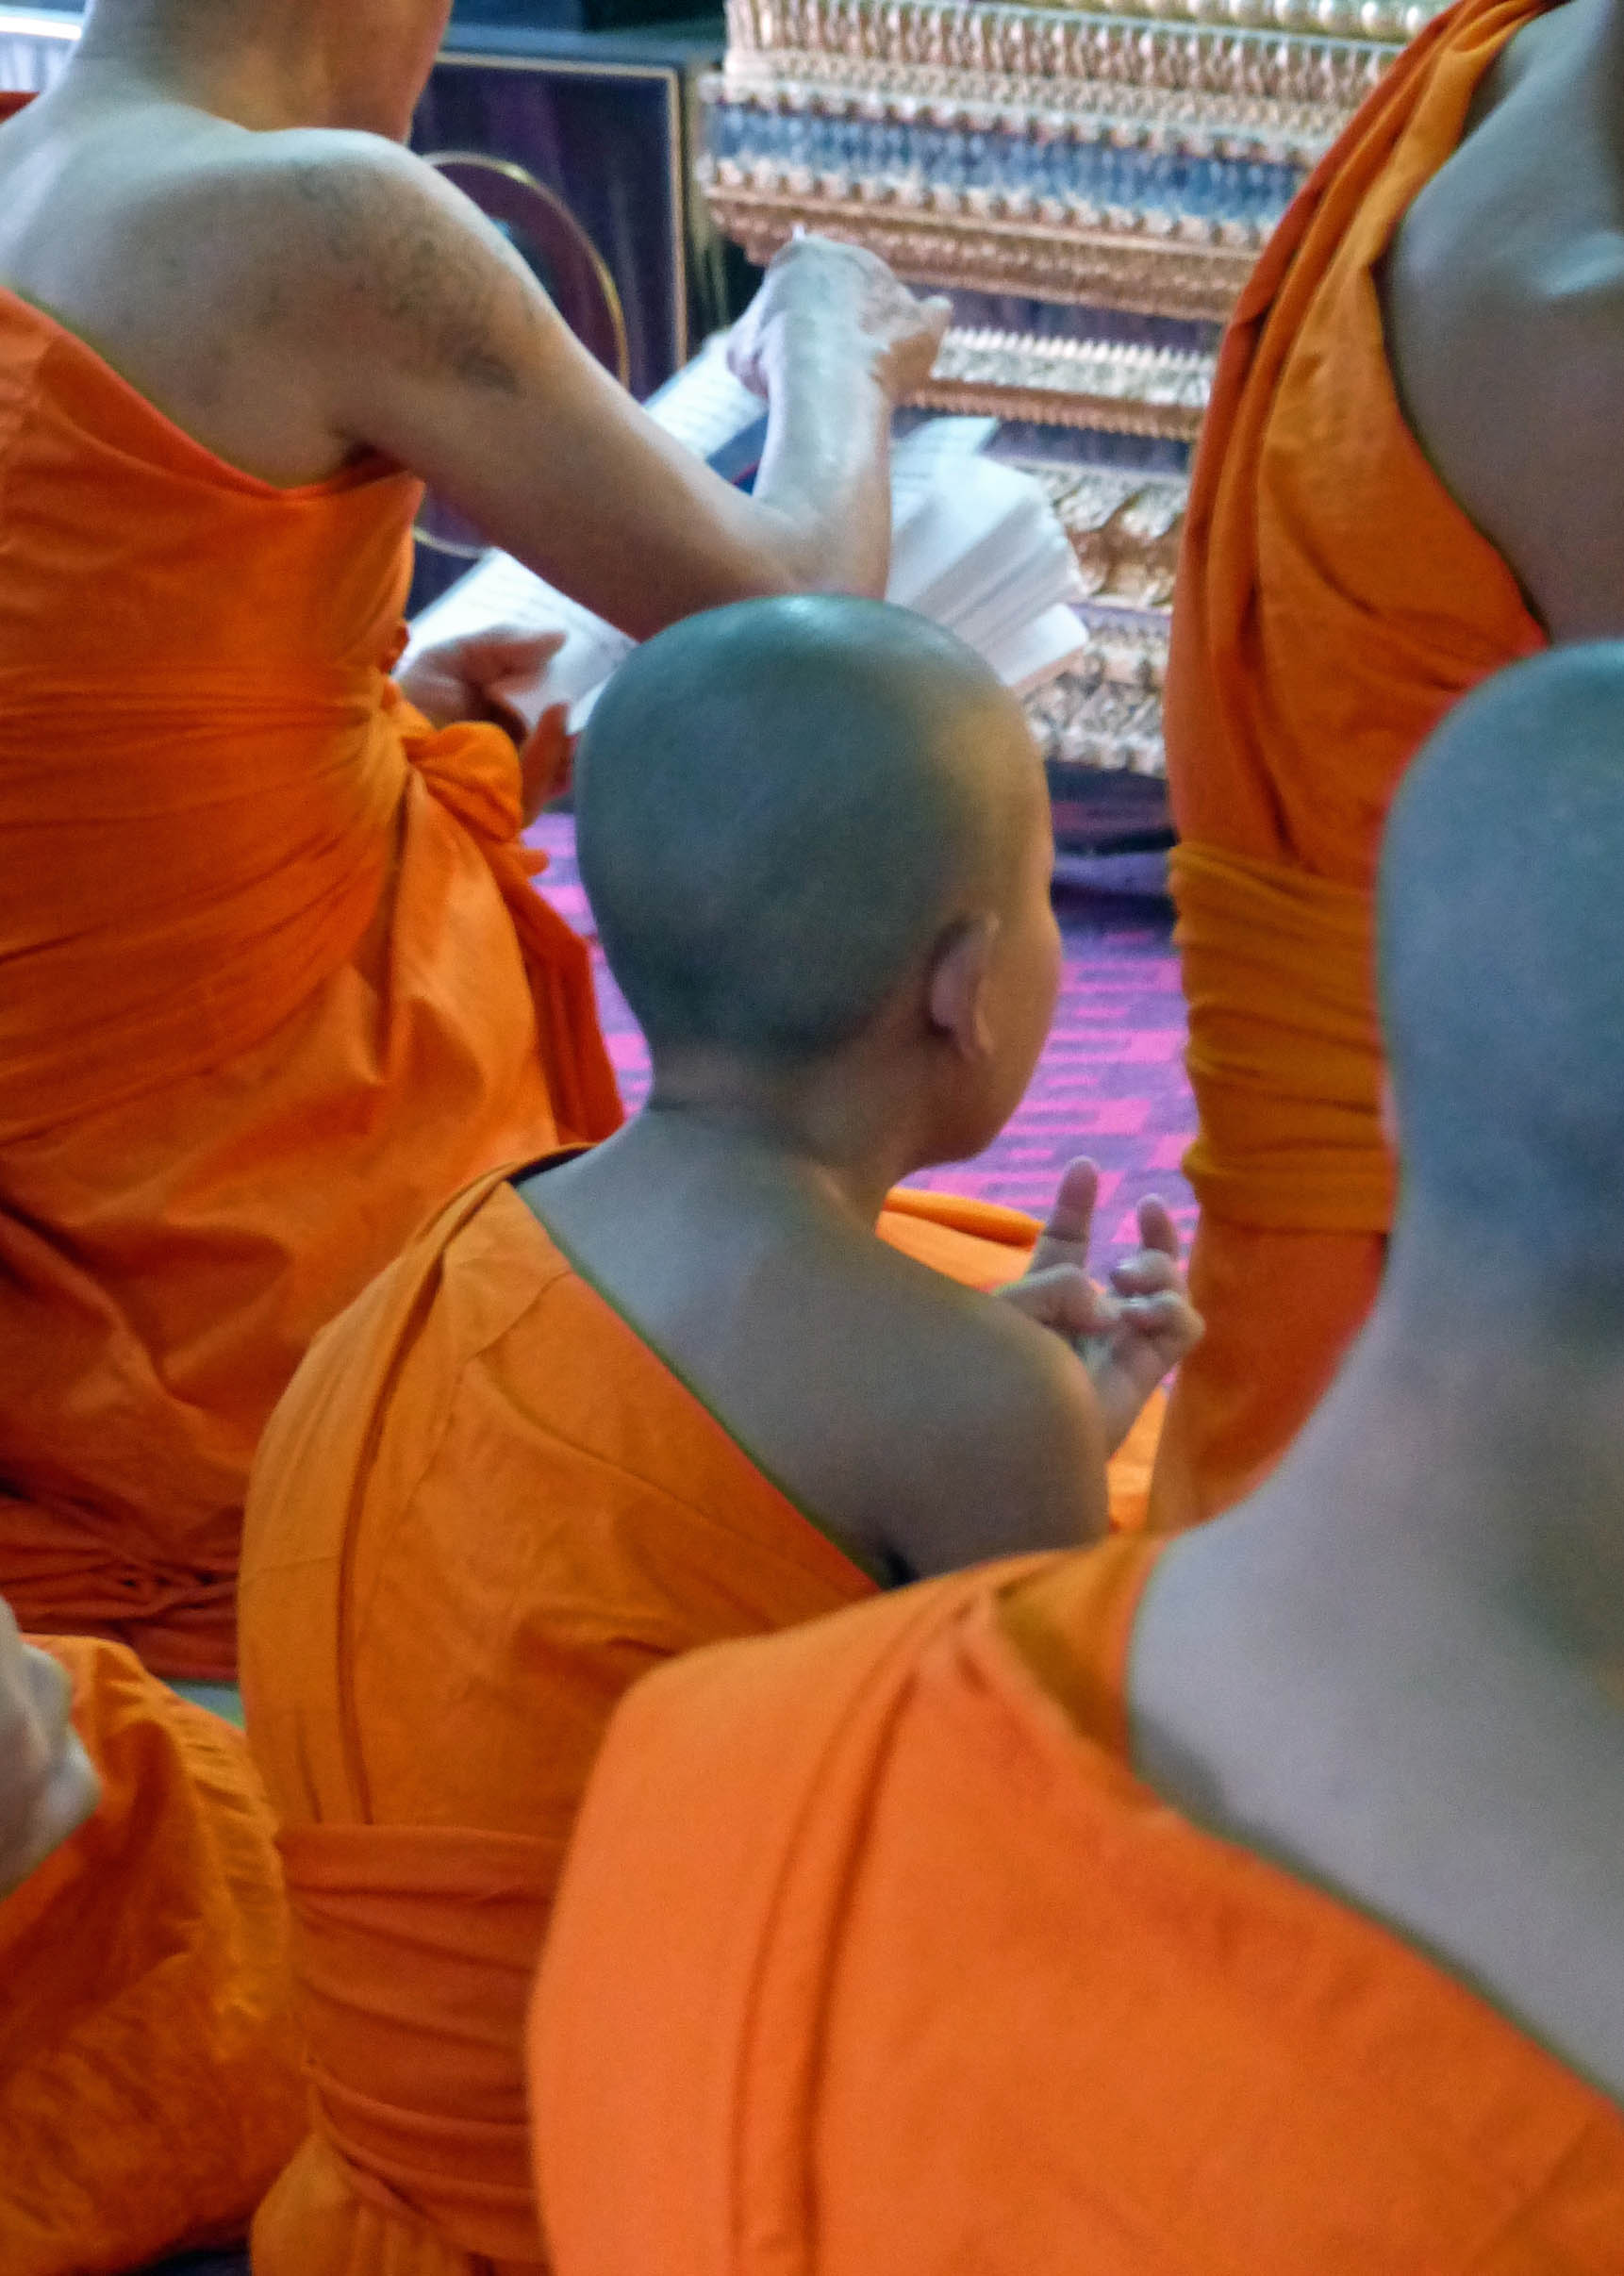 Young men in orange robes seated on the floor of a temple